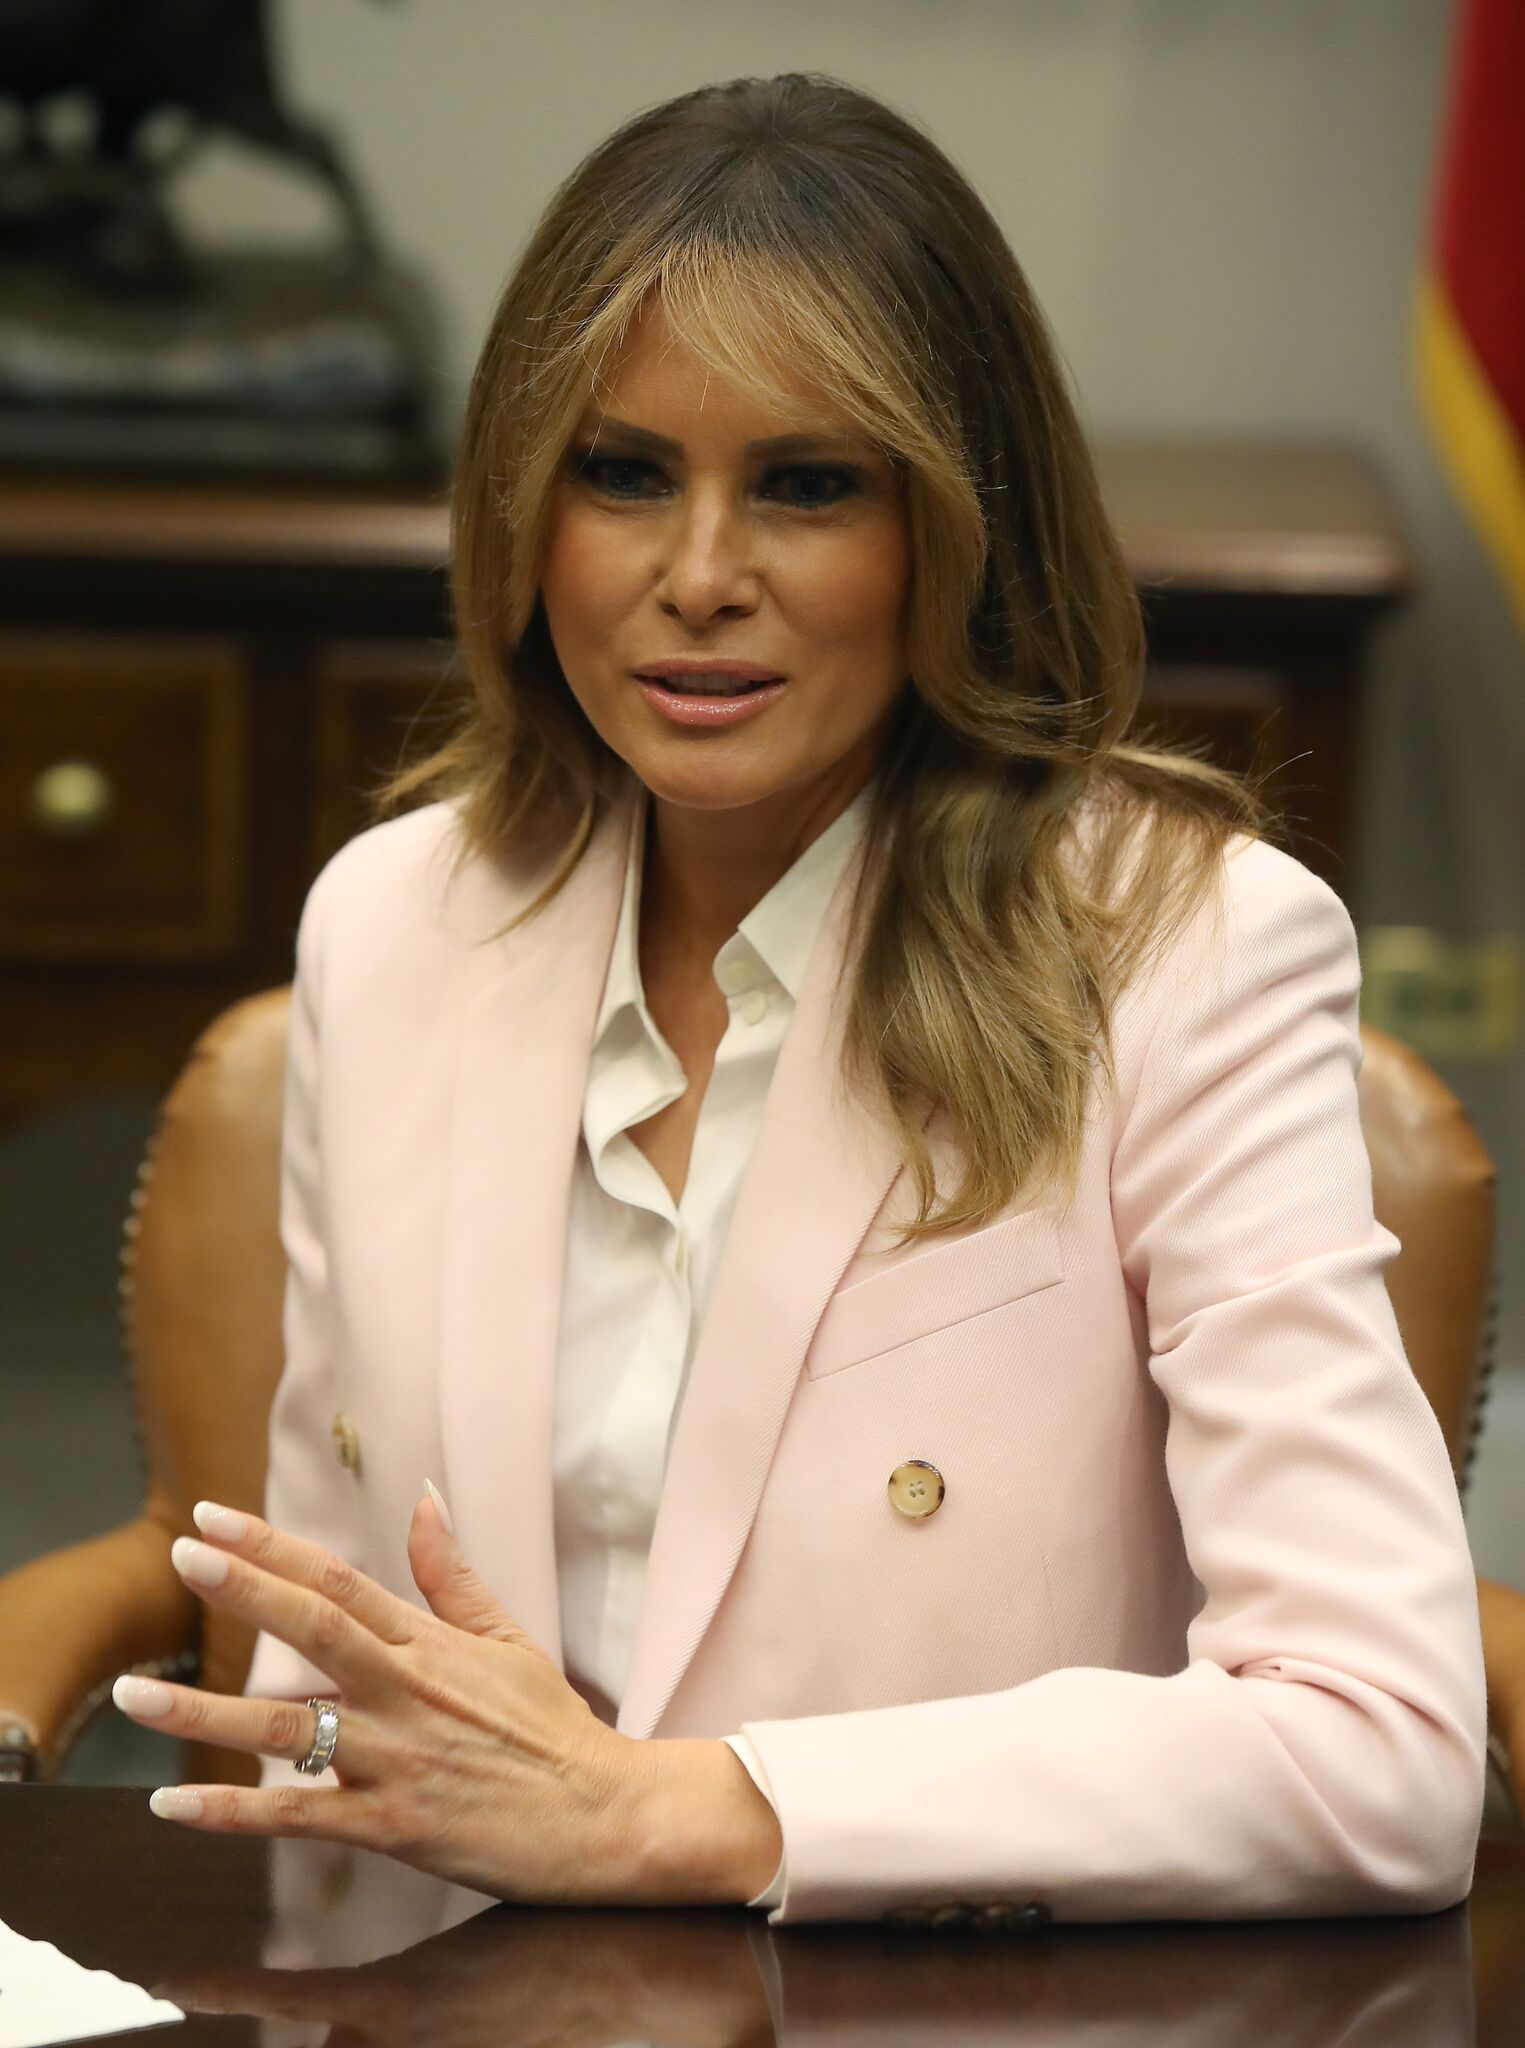 First lady Melania Trump speks during a roundtable discussion on the administration's efforts to combat the opioid epidemic, in the Roosevelt Room at the White House on June 12, 2019 | Photo: Getty Images